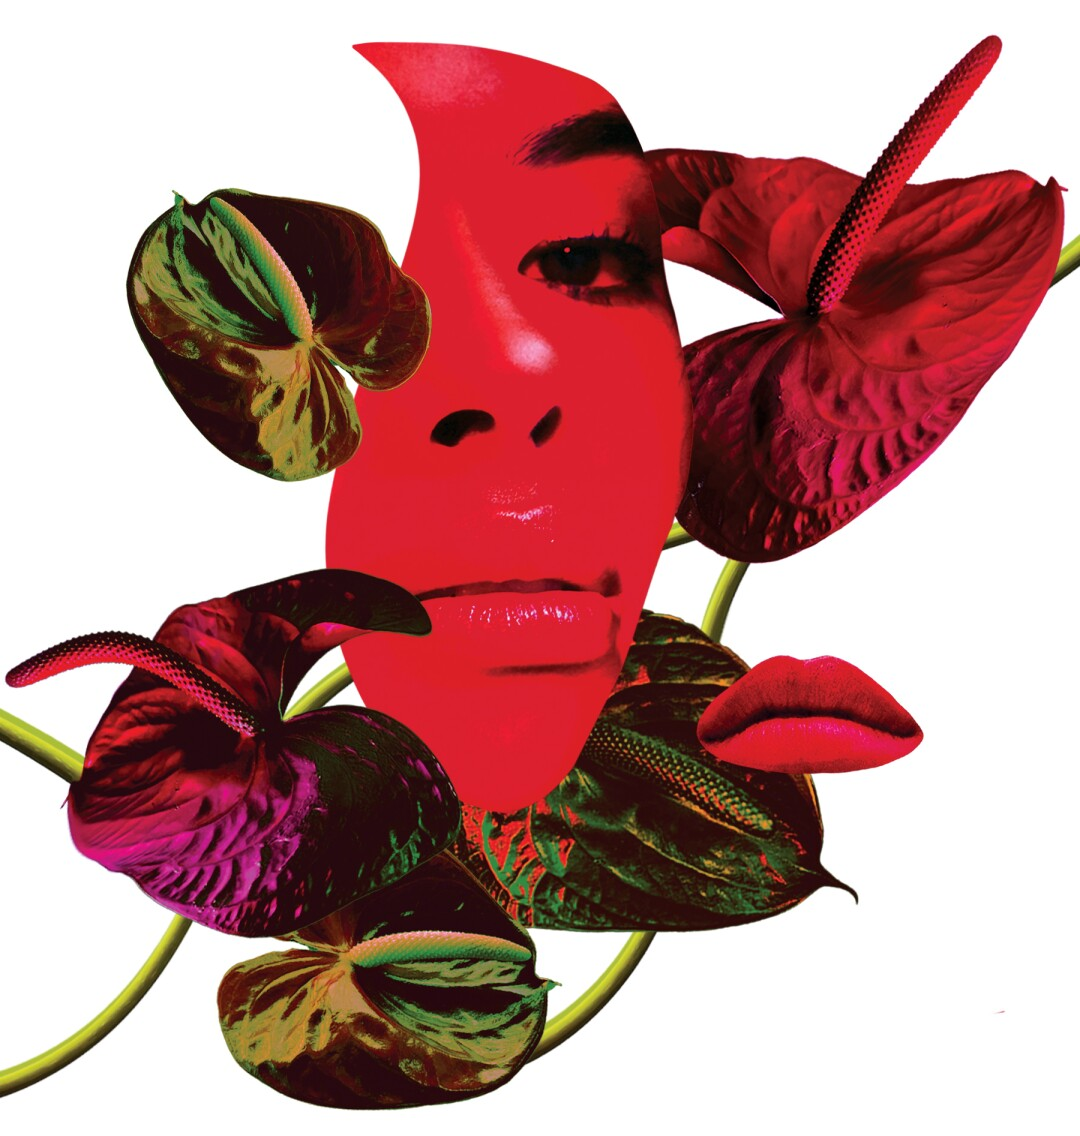 spot collage of plants surrounding a cut out of a face